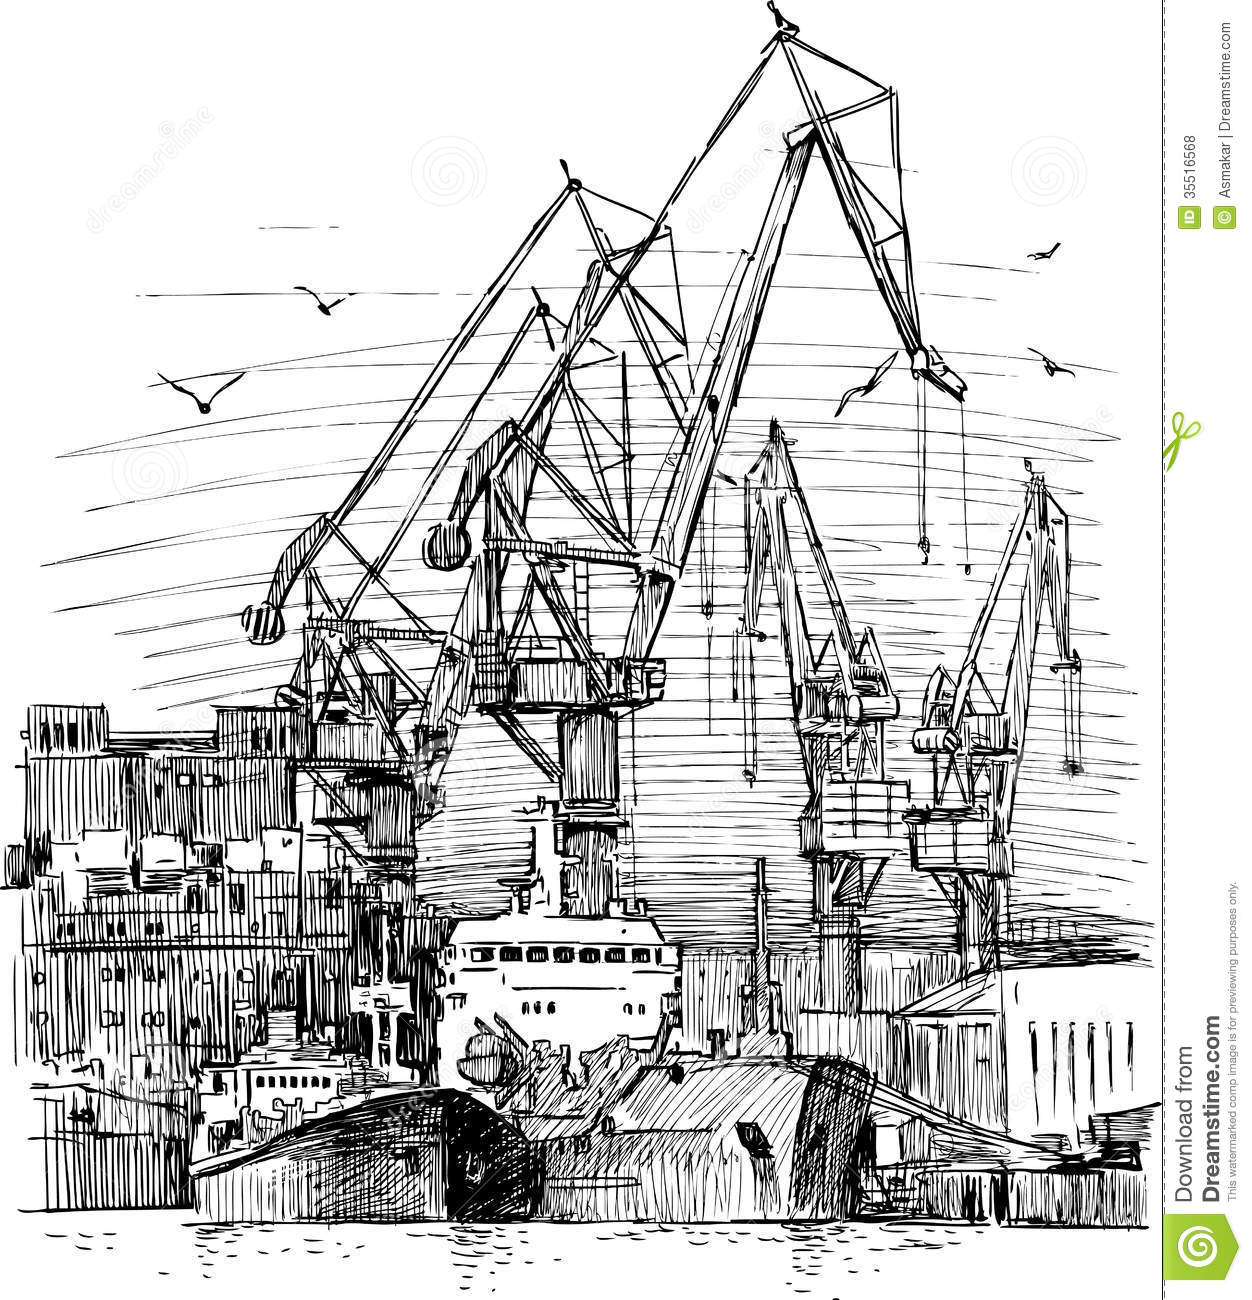 Industrial Seaport Royalty Free Stock Photos - Image: 35516568